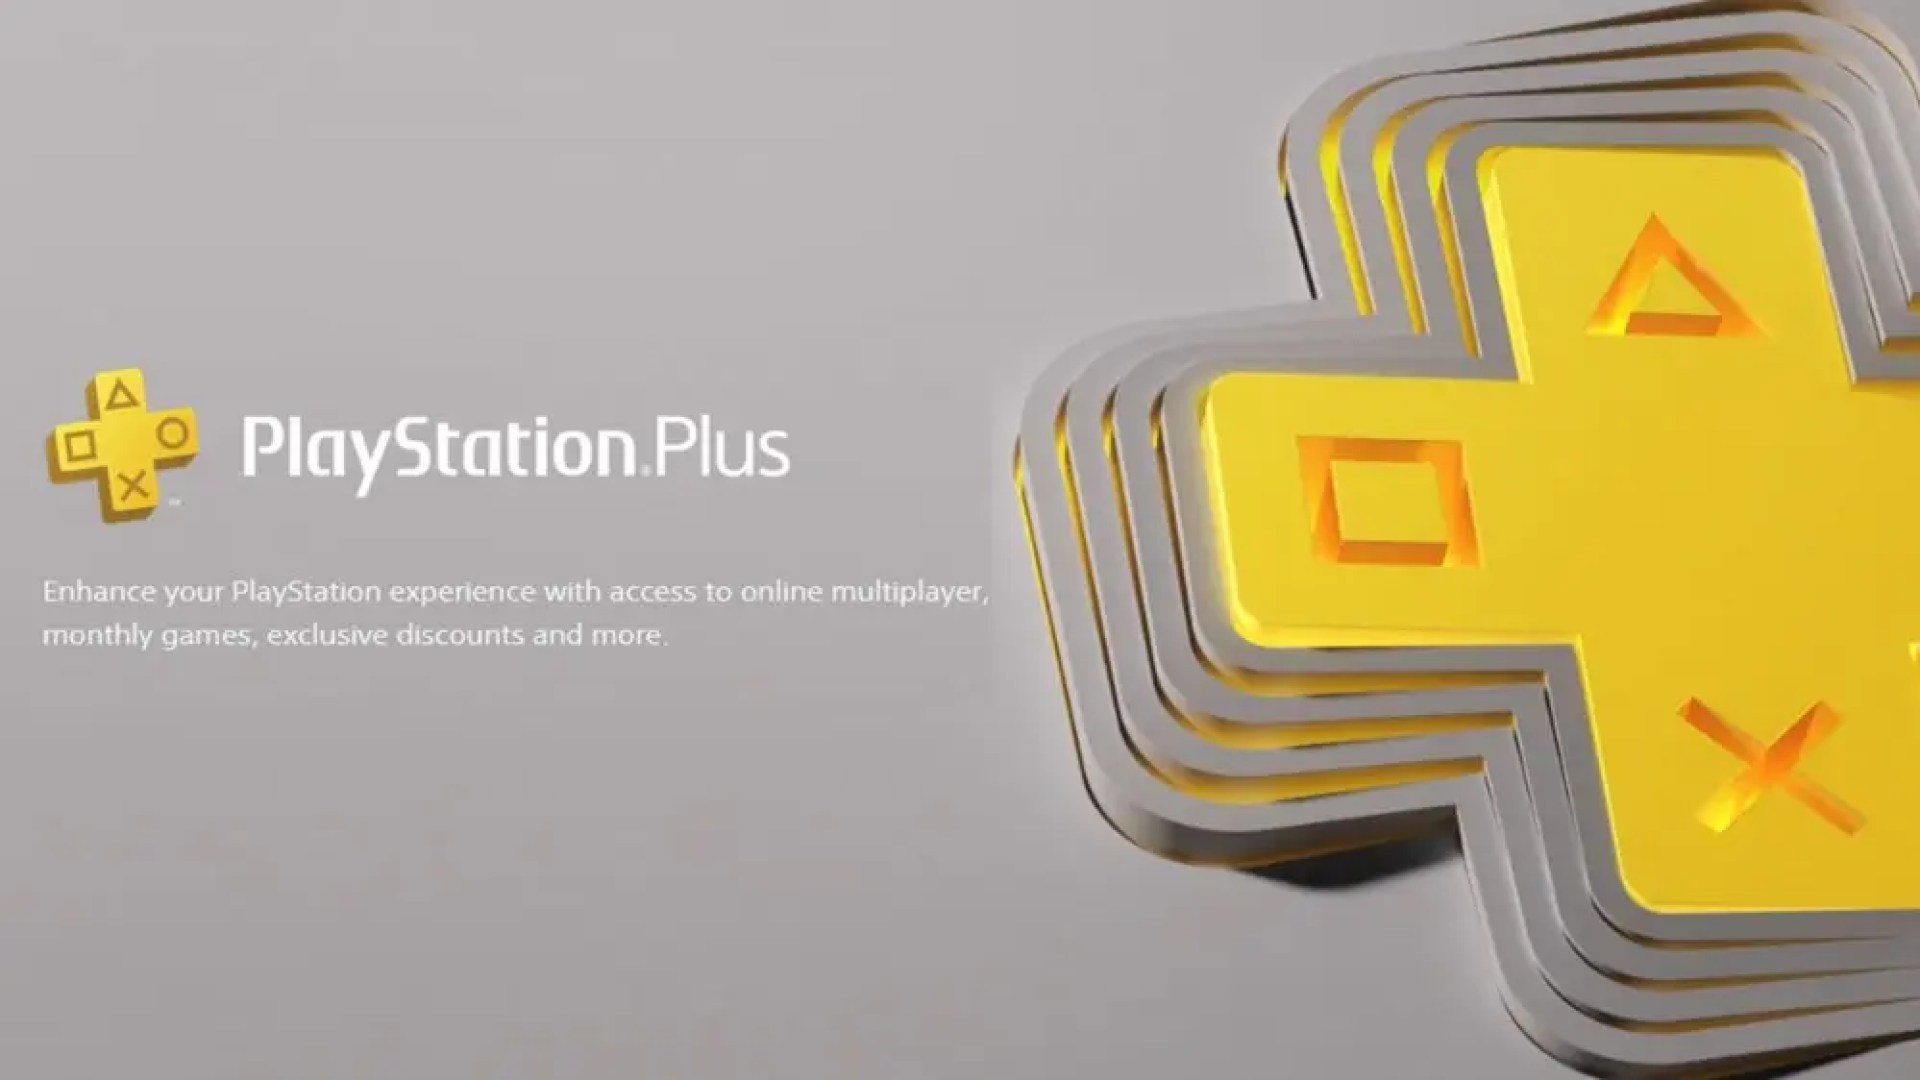 A screenshot of the PlayStation Plus website.